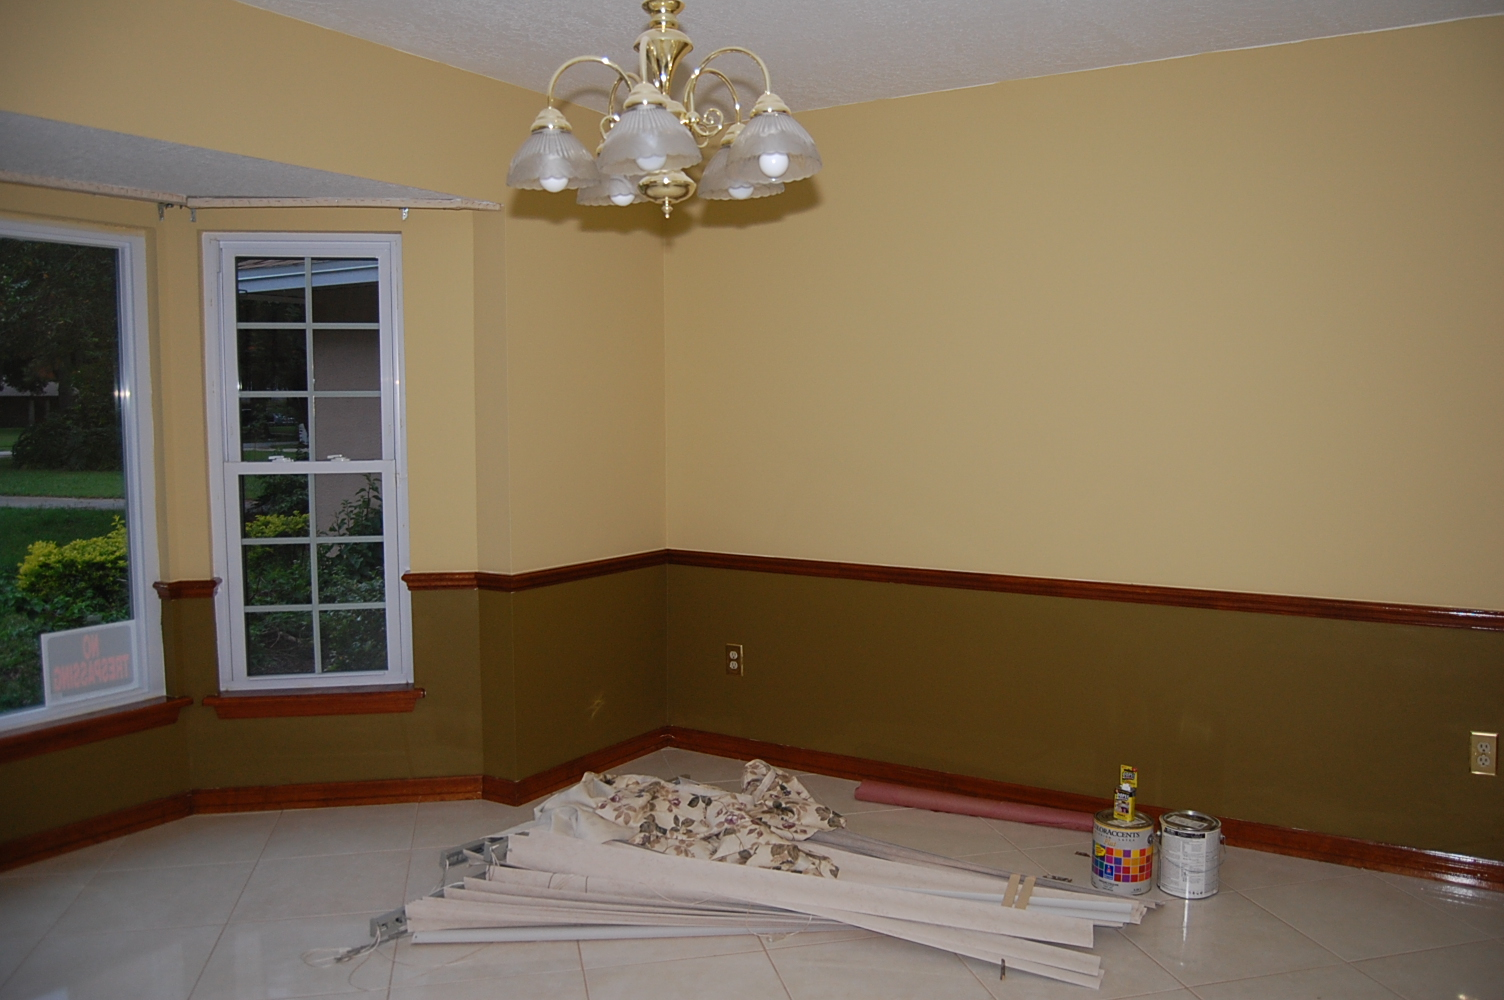 Crown molding style for 8 foot ceiling? (paint, color